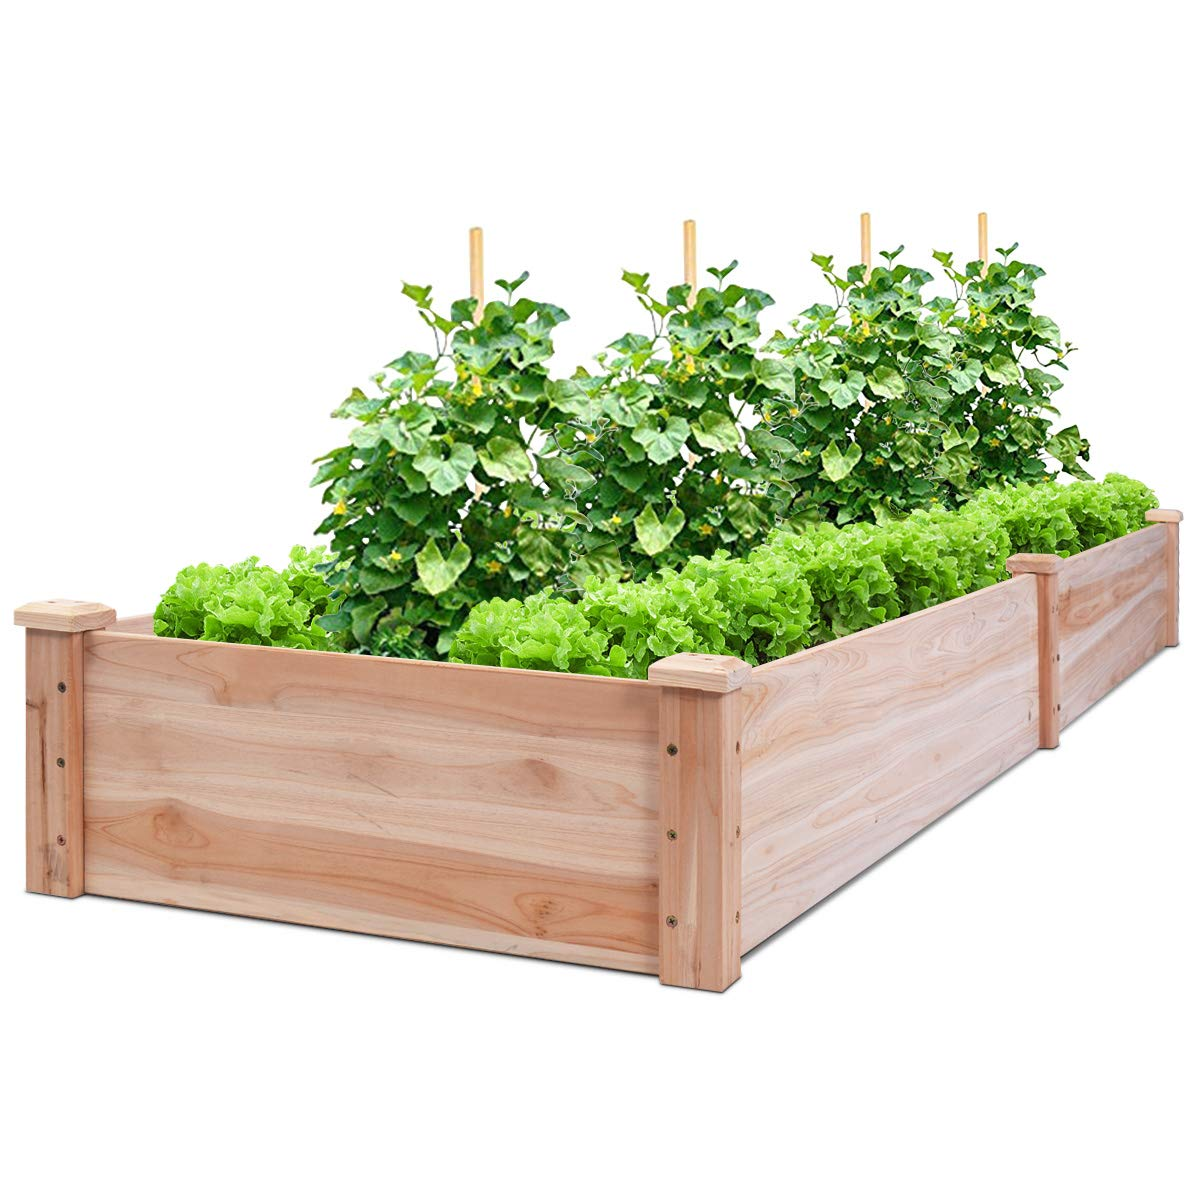 Giantex Raised Garden Bed Planter, Wooden Elevated Vegetable Planter Kit Box Grow for Patio Deck Balcony Outdoor Gardening, Natural (96''X24''X10'')